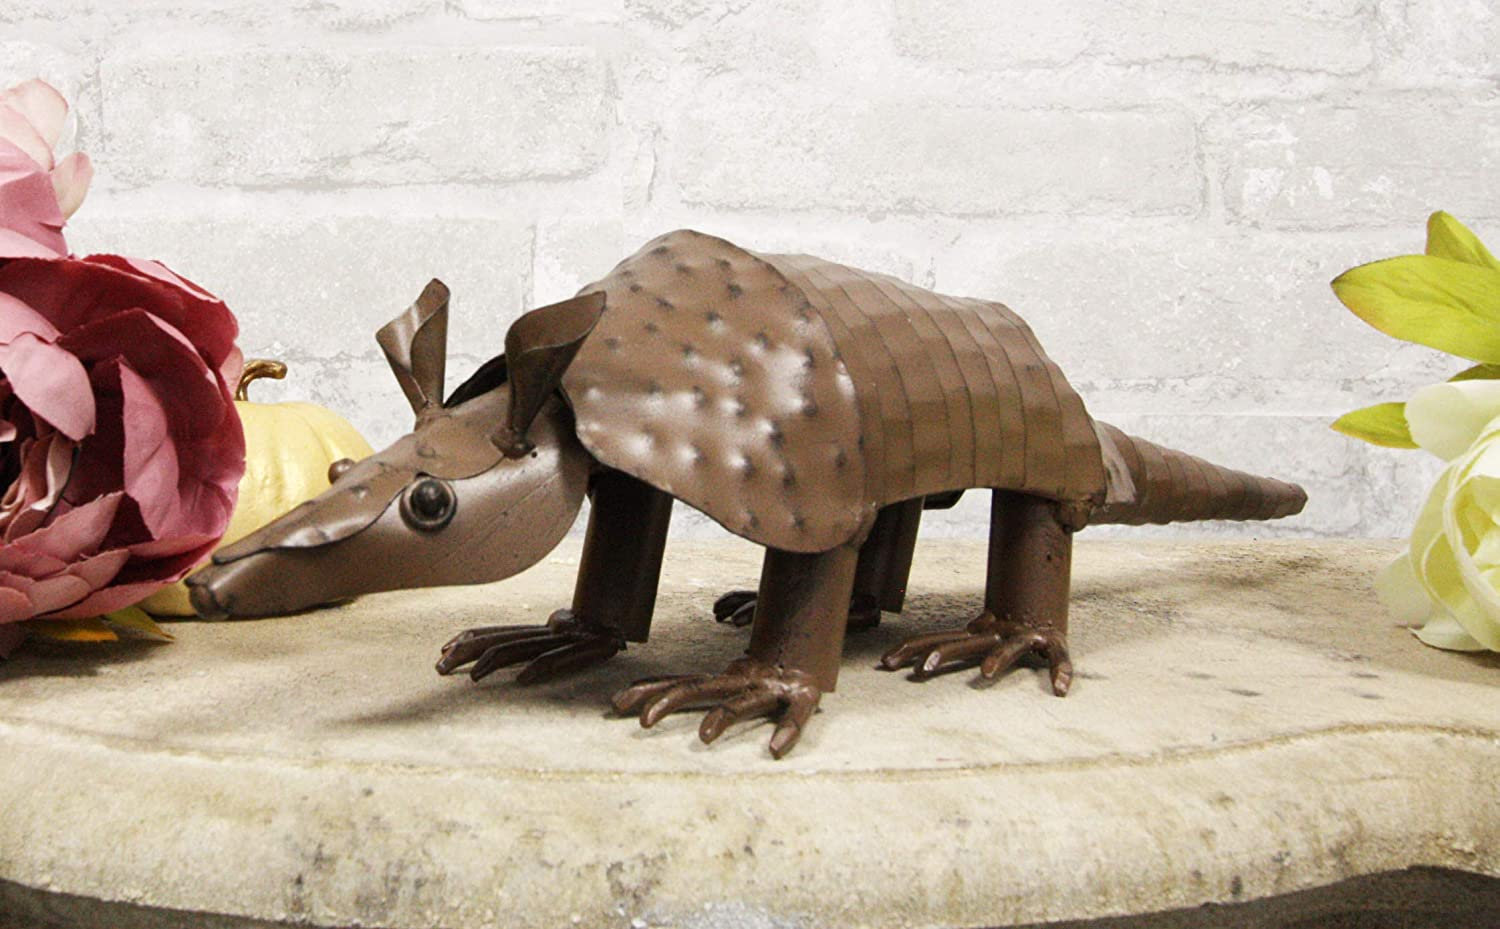 Ebros Western Rustic Forest Hand Sculpted Metal Springy Armadillo Statue 15.5